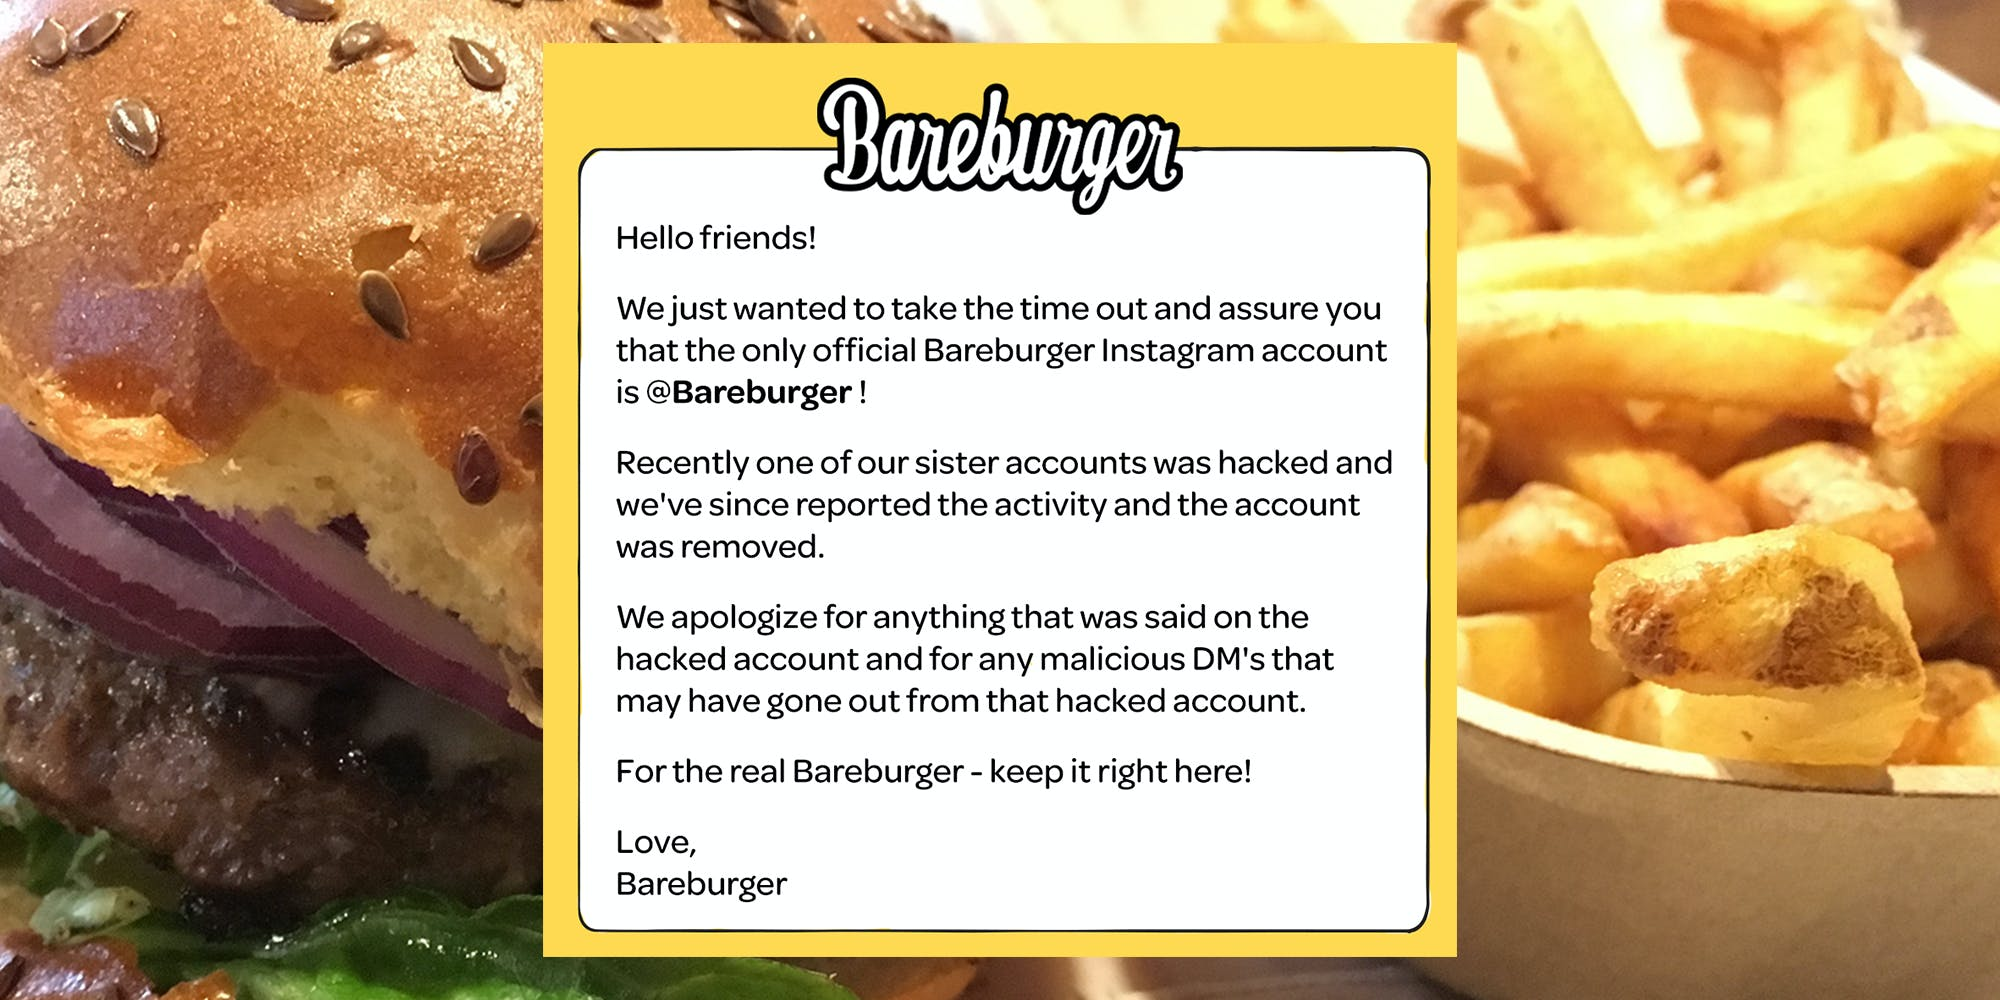 Bareburger post claims their social accounts were hacked, over burger and fries background